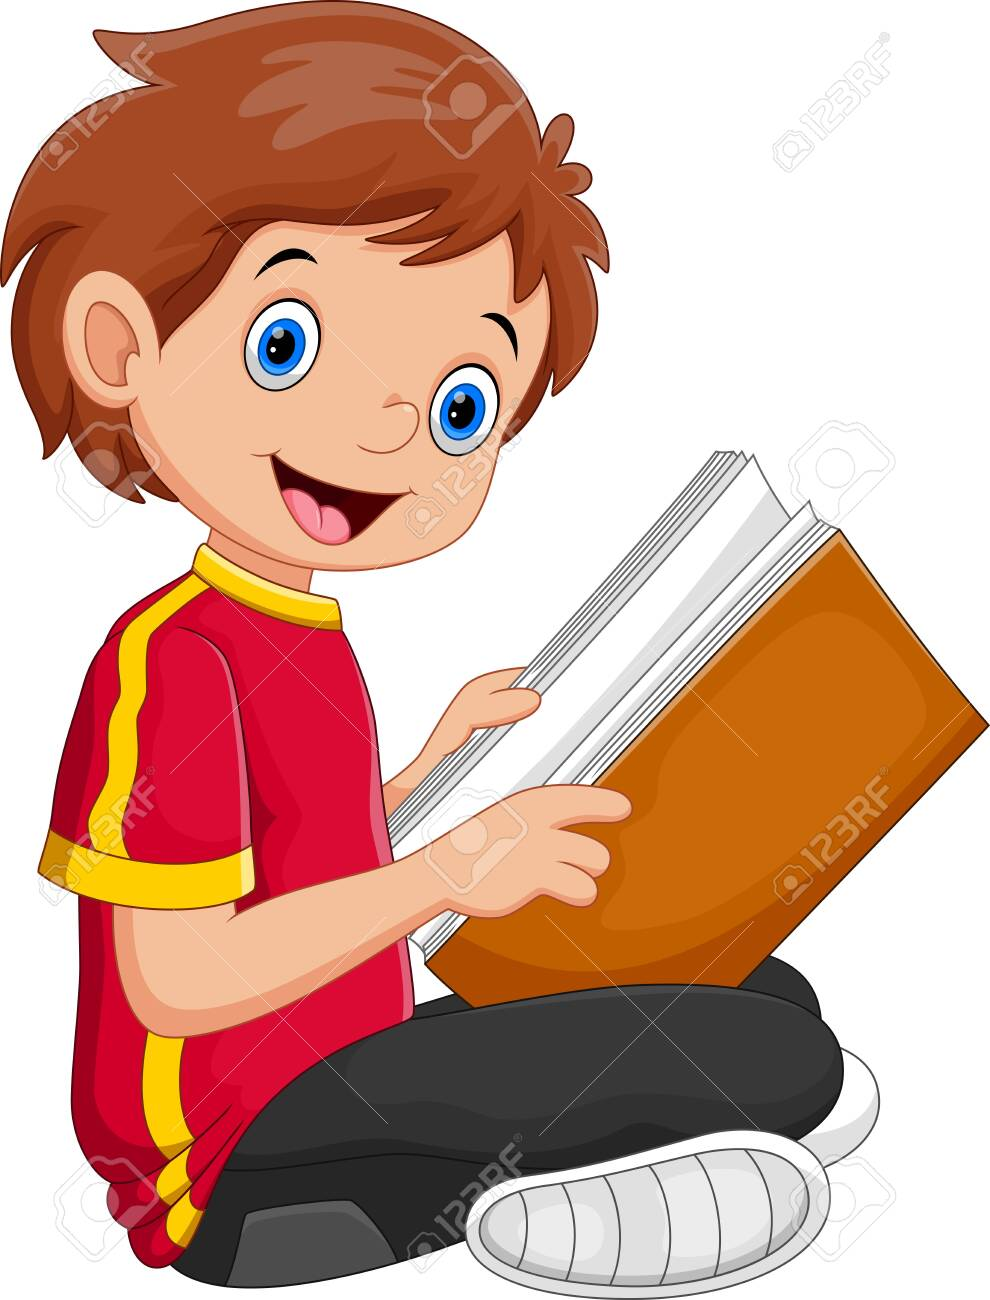 Kid Reading a Book - 137126367